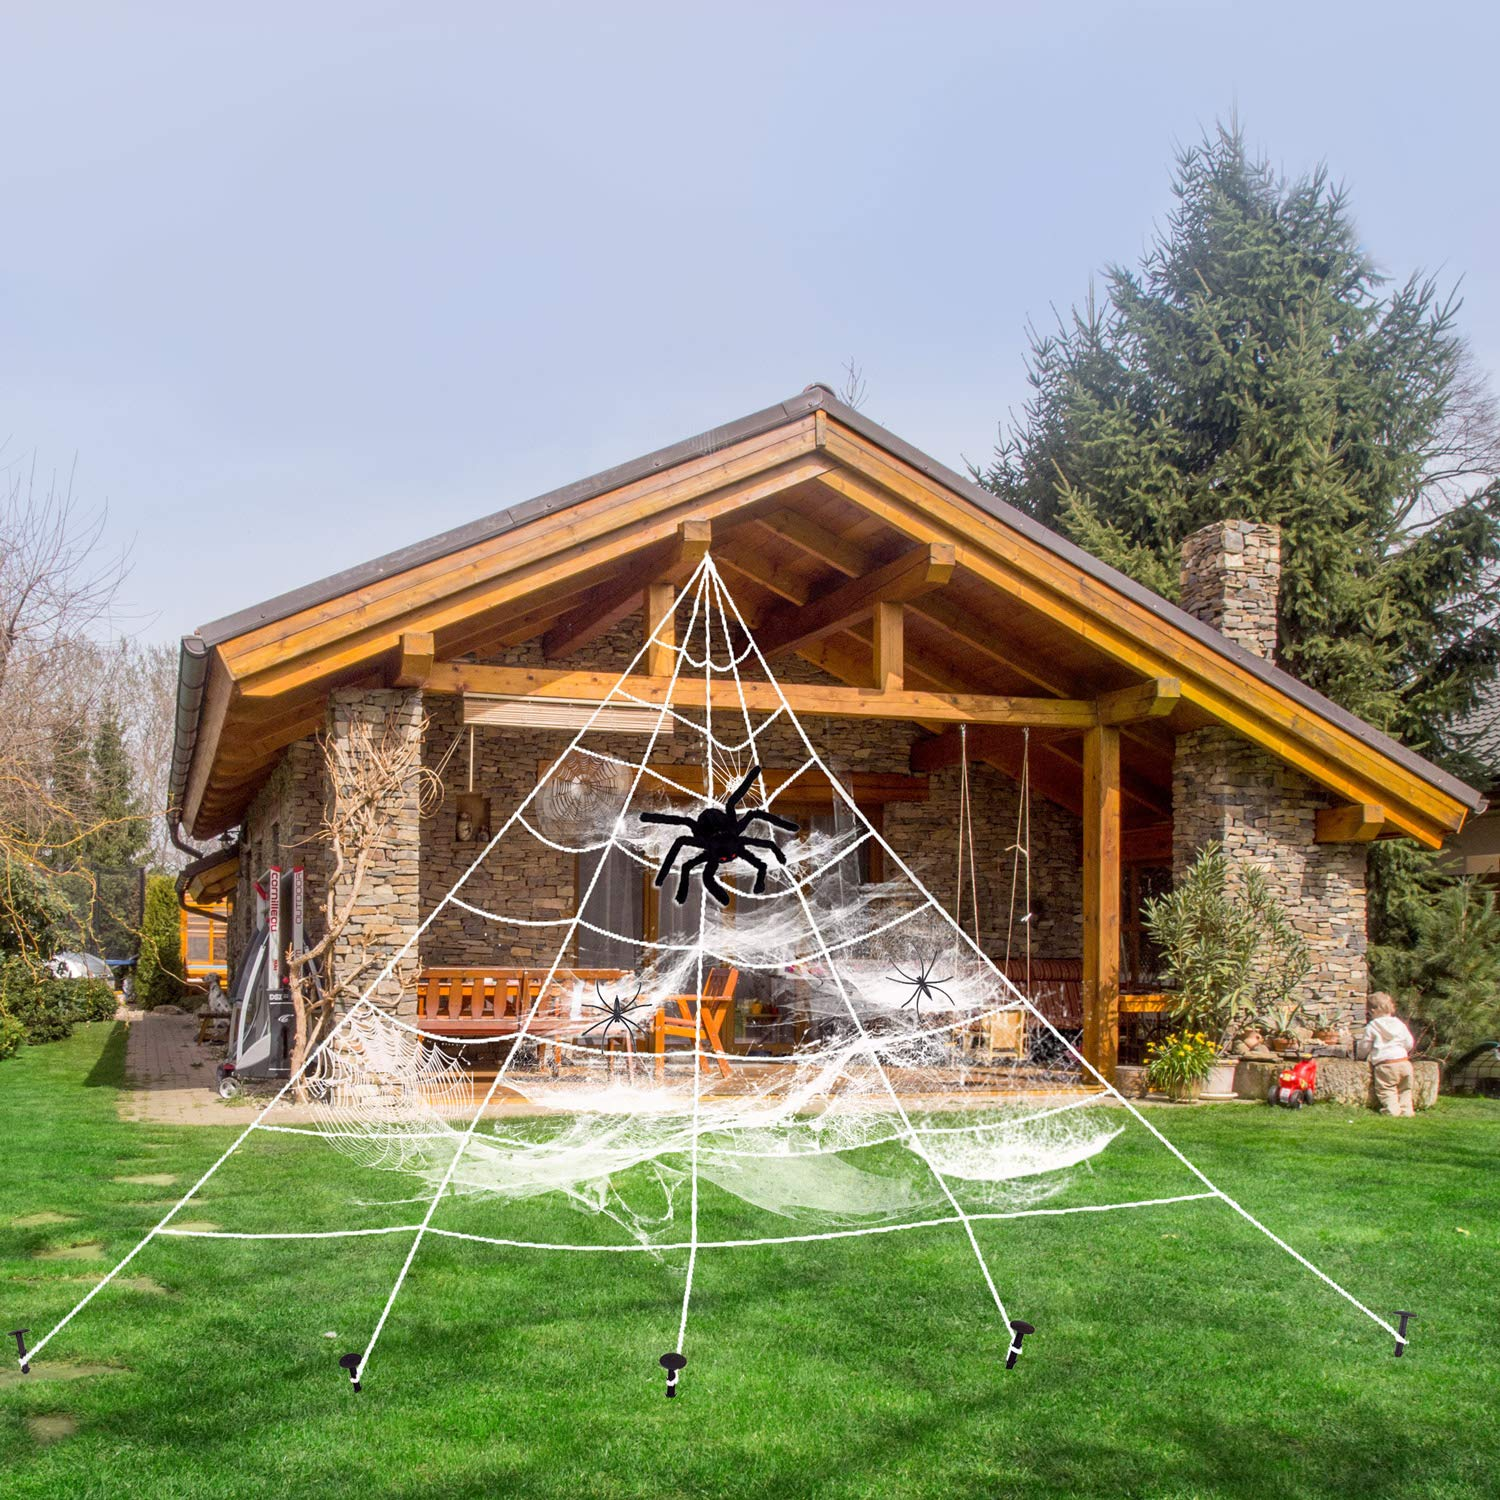 Love66 Giant Spider Web Halloween Decorations,with 3Pcs Extra Free Spiders and 1Pack Cobweb Set - White Stretch 16 Feet Web and The Hairy Red-Eyed Spider,Halloween Decor Outdoor Garden Yard Bar Party